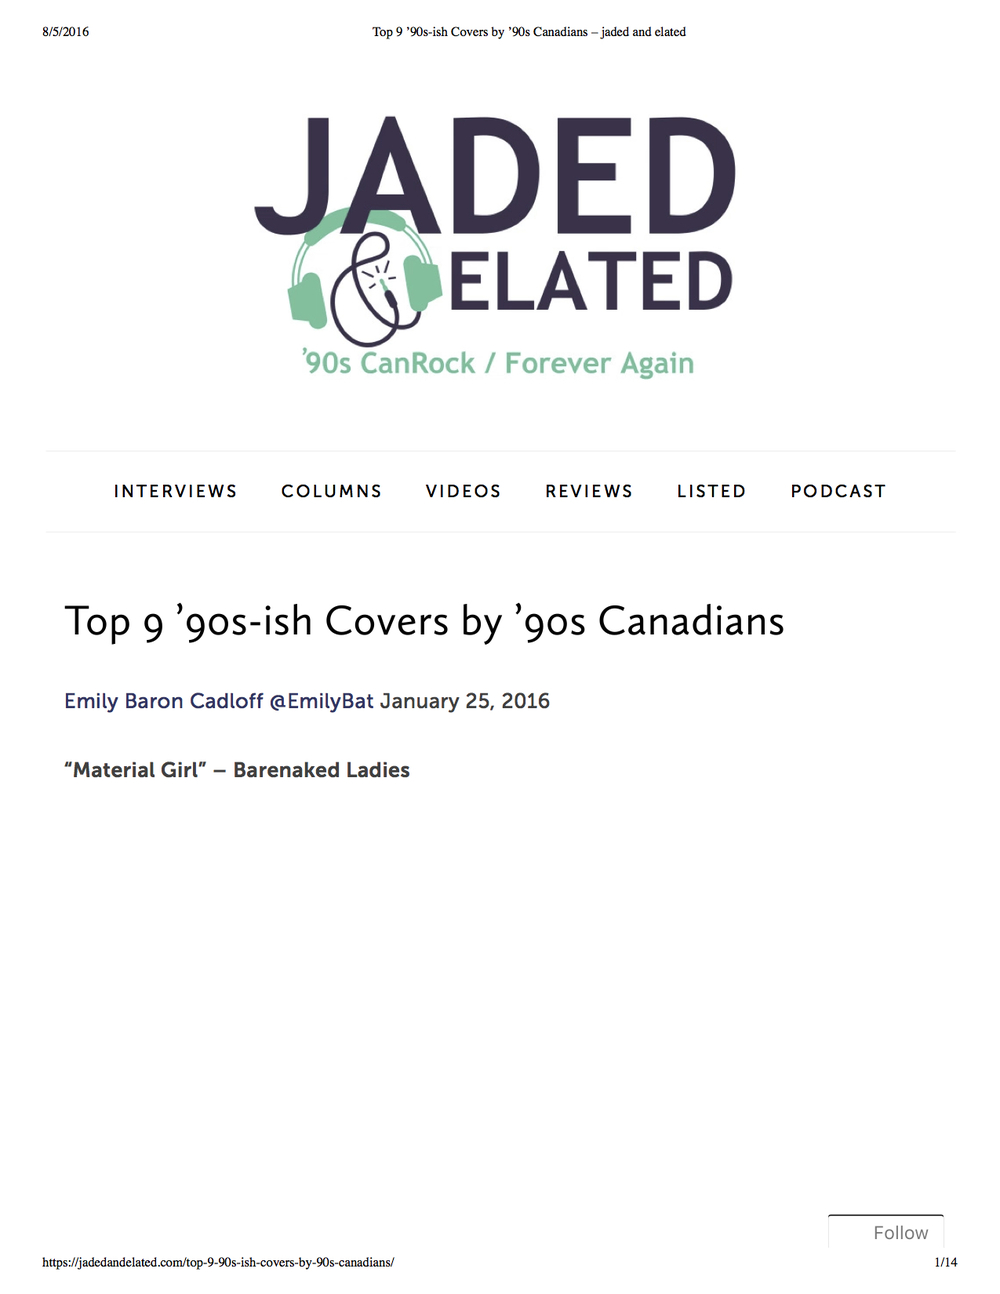 Listicle of Canadian musicians. Jaded and Elated, Jan 2016